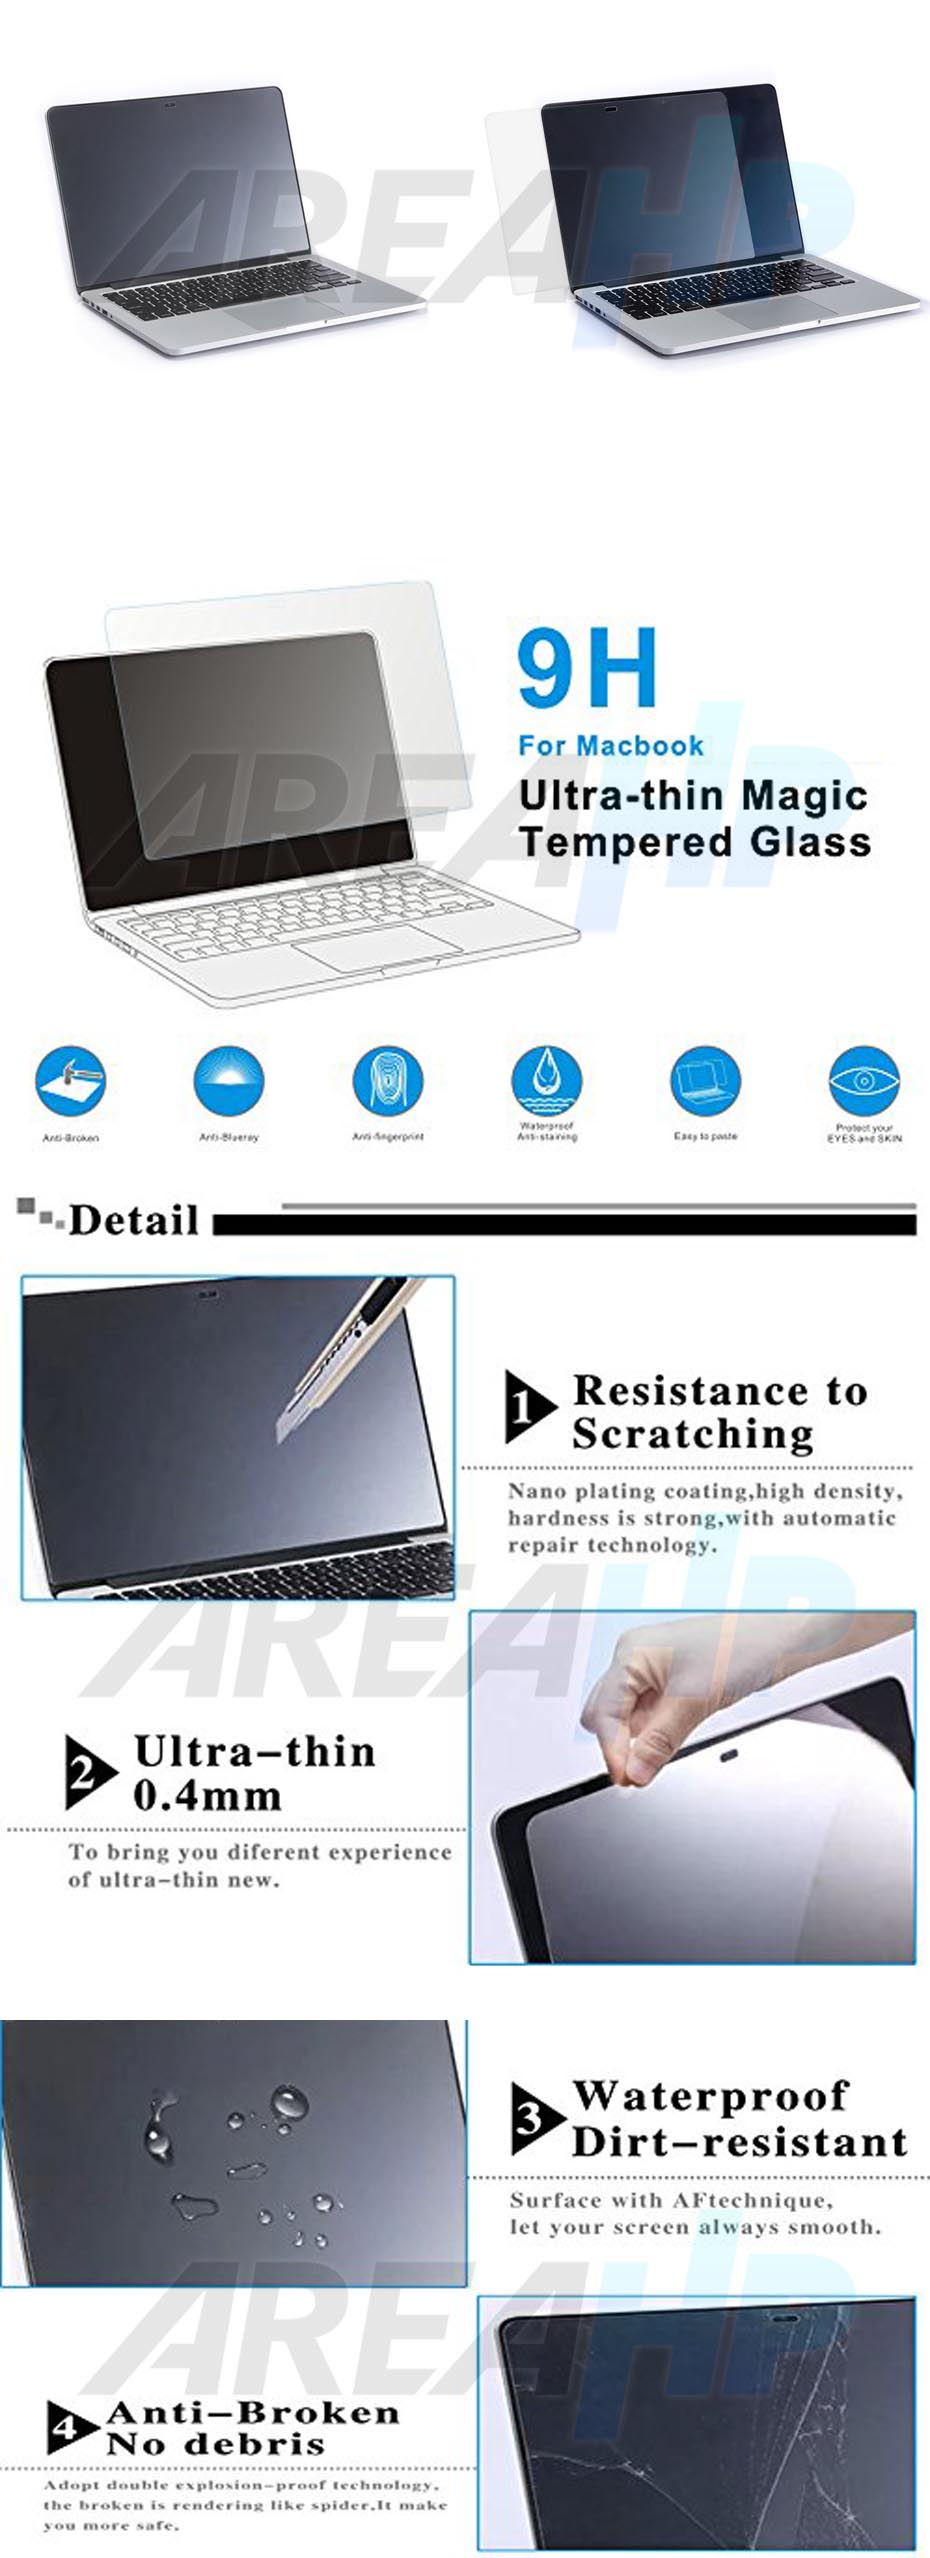 tempered-glass-macbook-overview